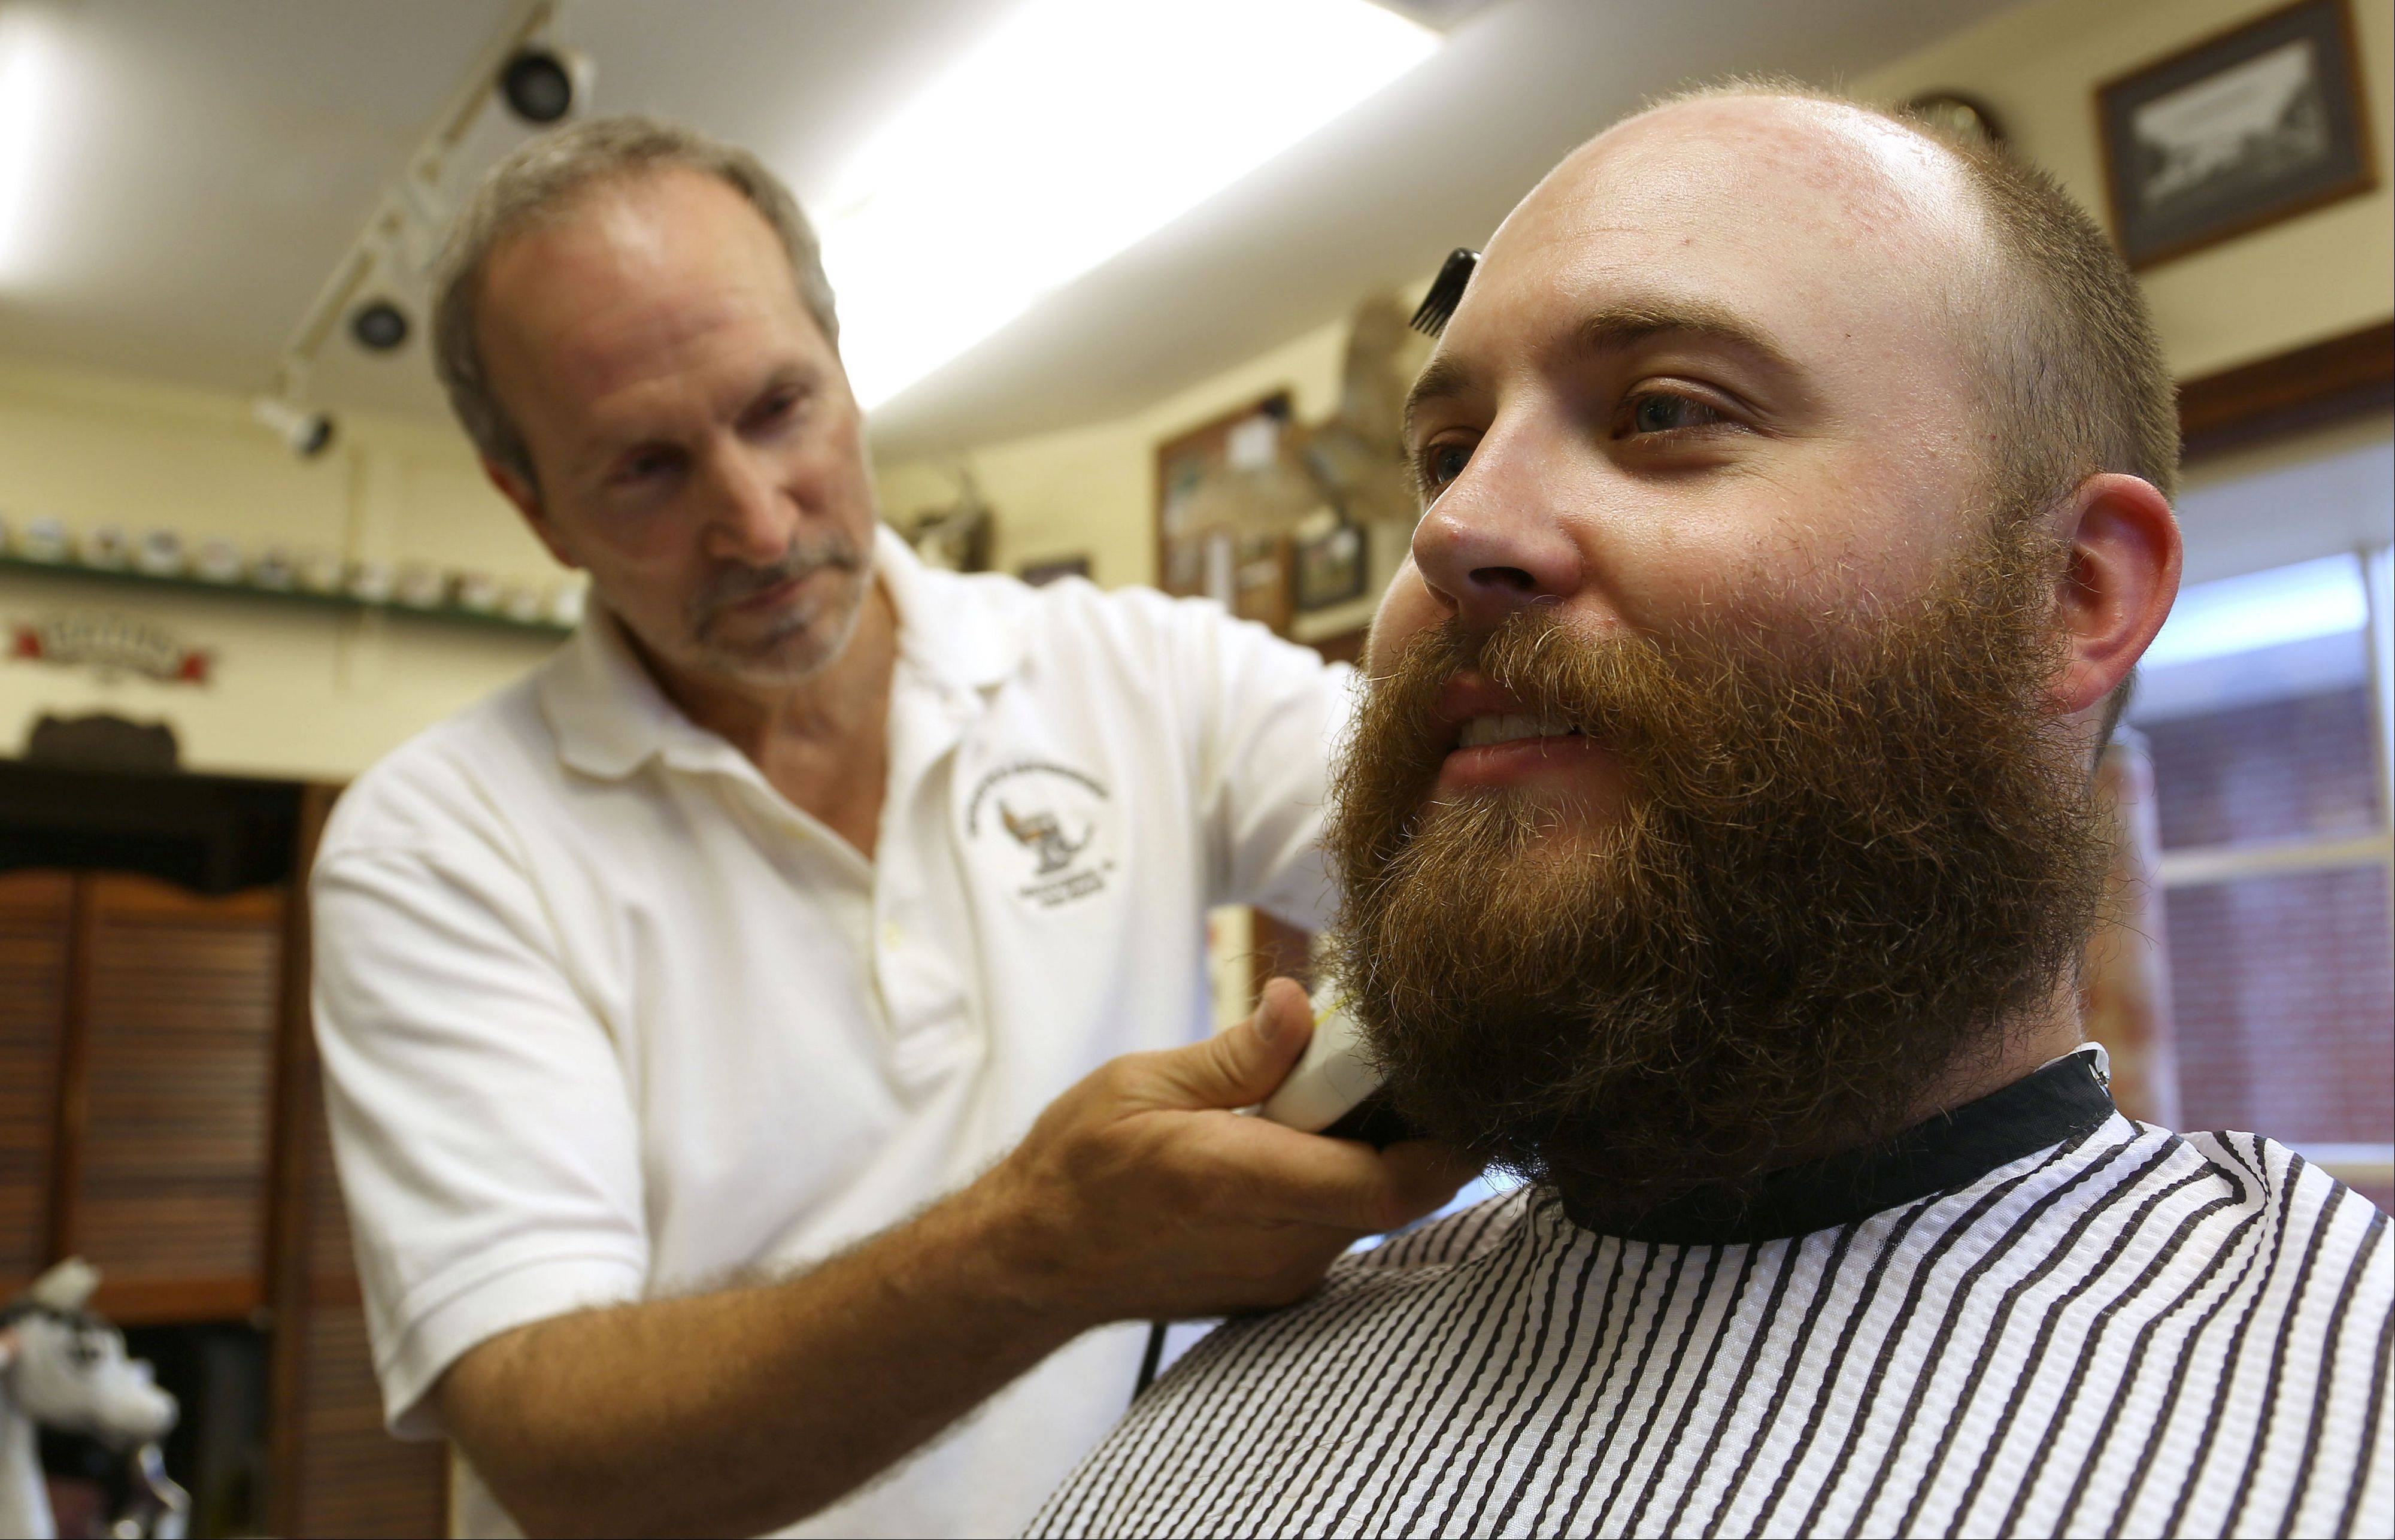 Patrick Ringel gets his playoff beard shaved Tuesday at Tremonte's Barbershop in Wauconda.